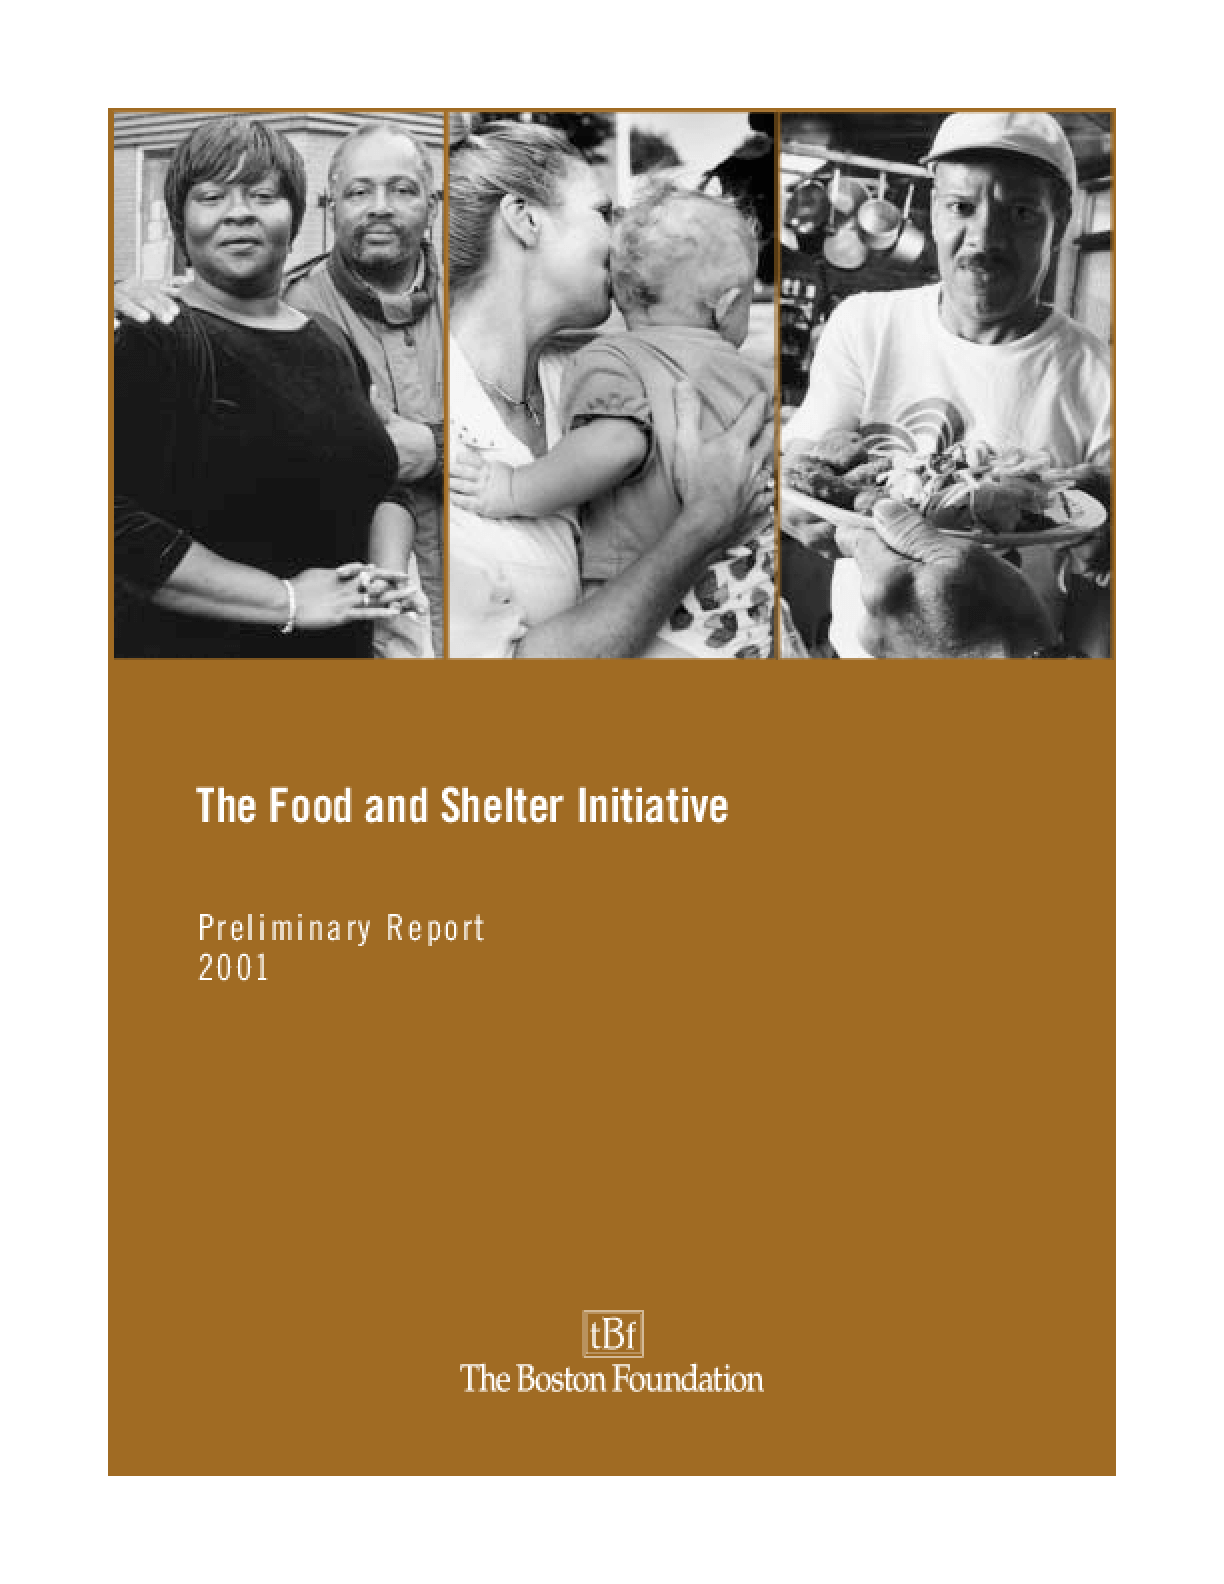 The Food and Shelter Initiative: Preliminary Report